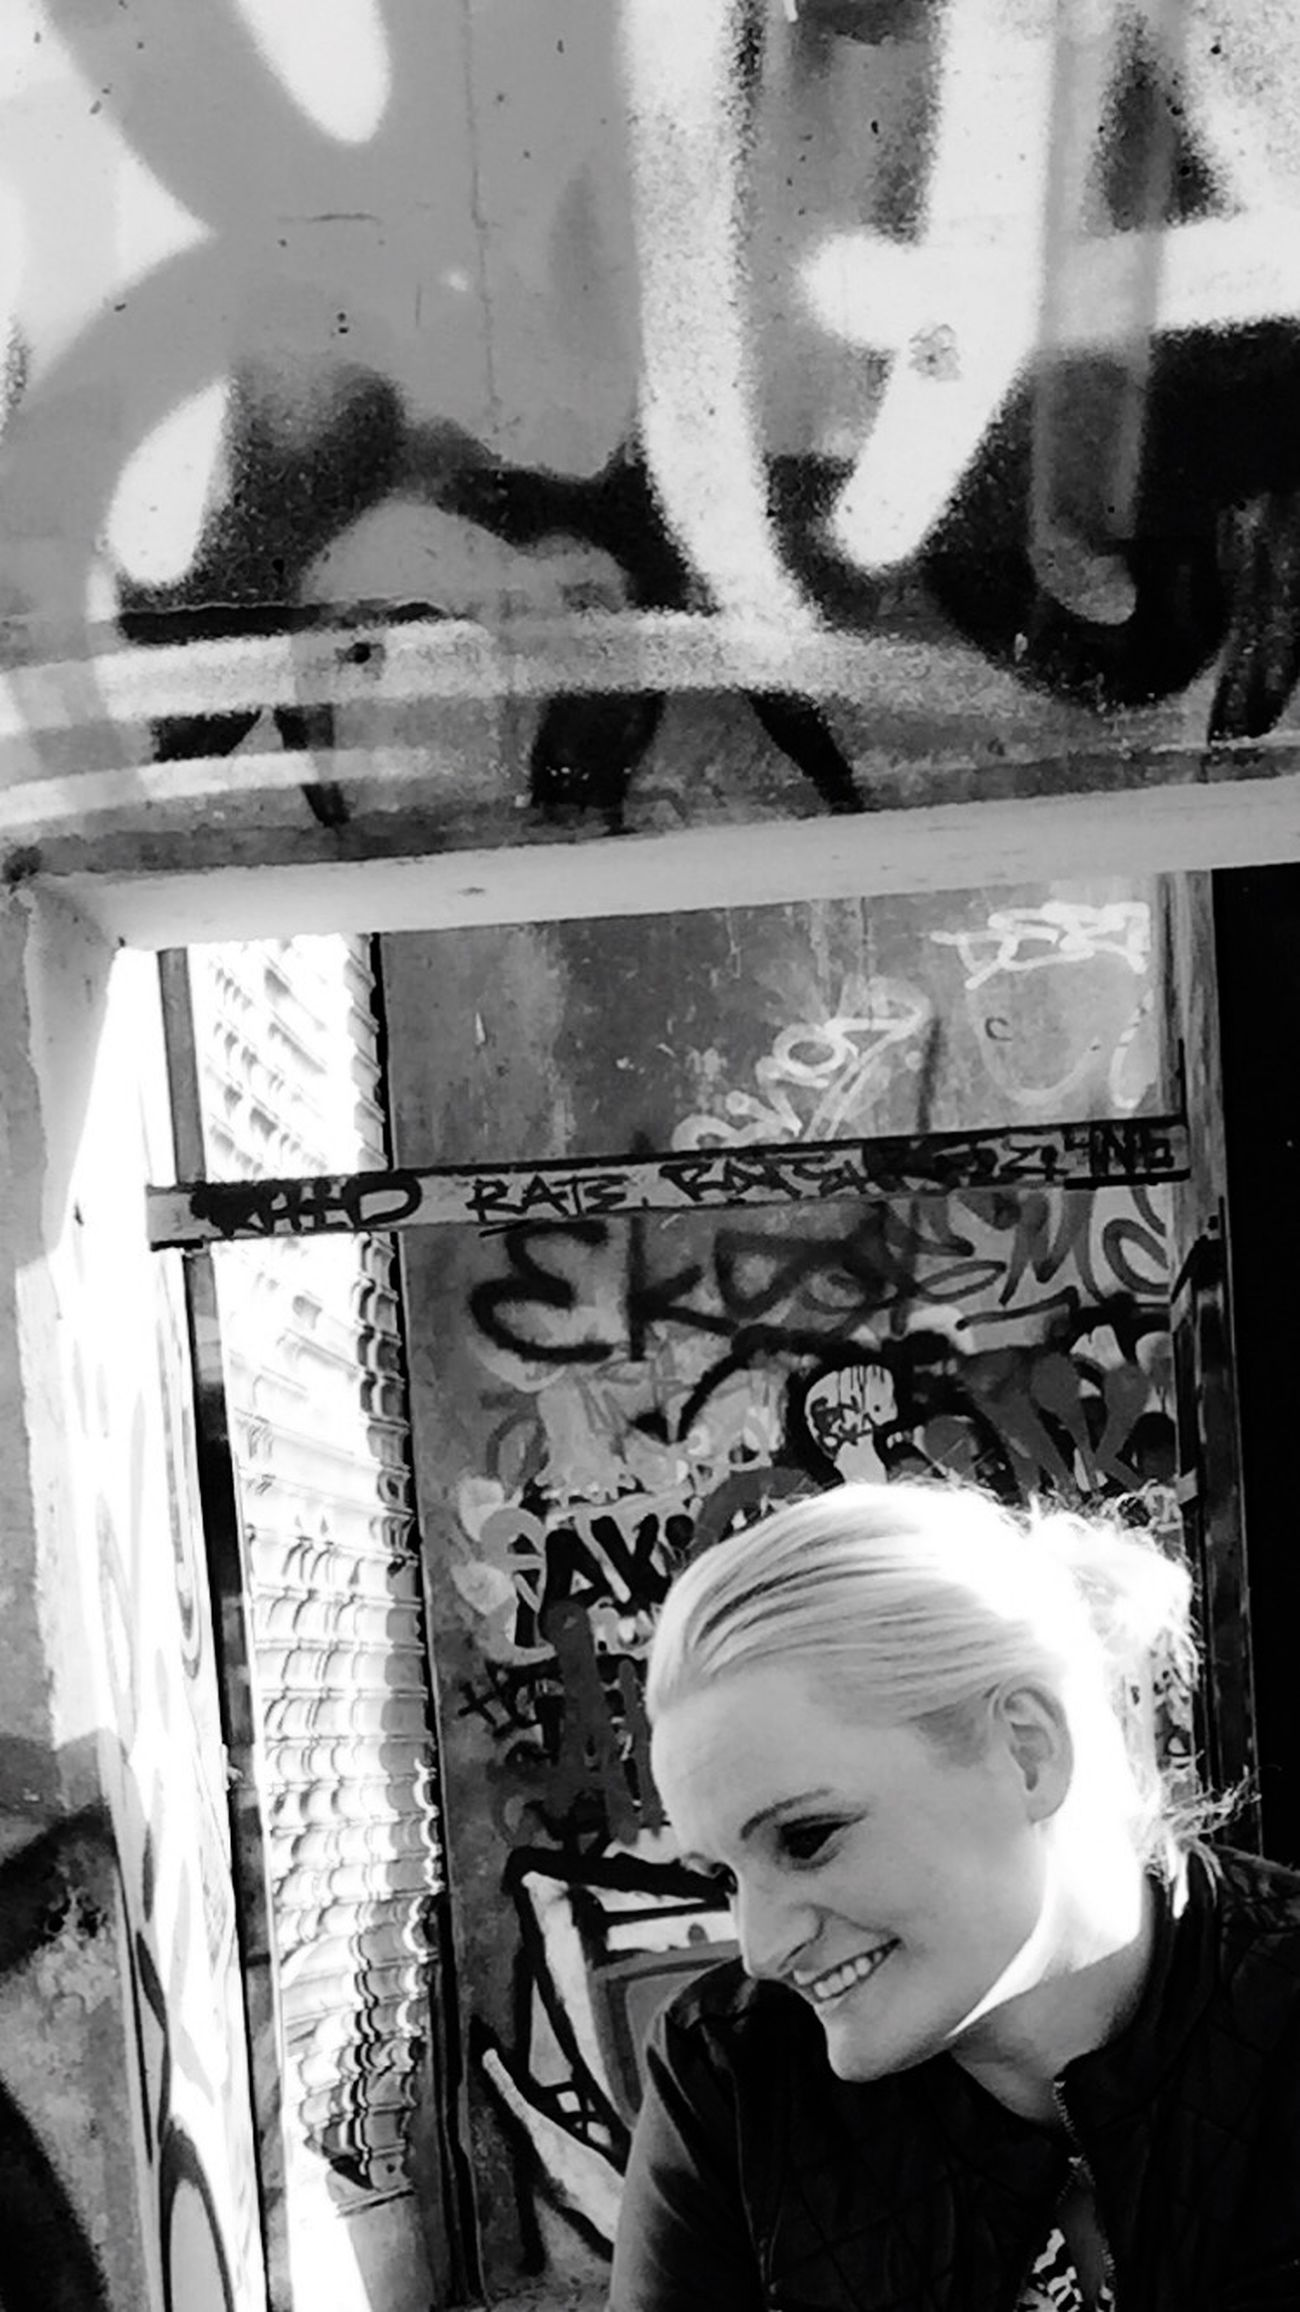 Blackandwhite Eye4photography  IPhoneography Walking Around Friends Lovethewayyousmile Graffiti Streetphotography ThatsMe Enjoying Life